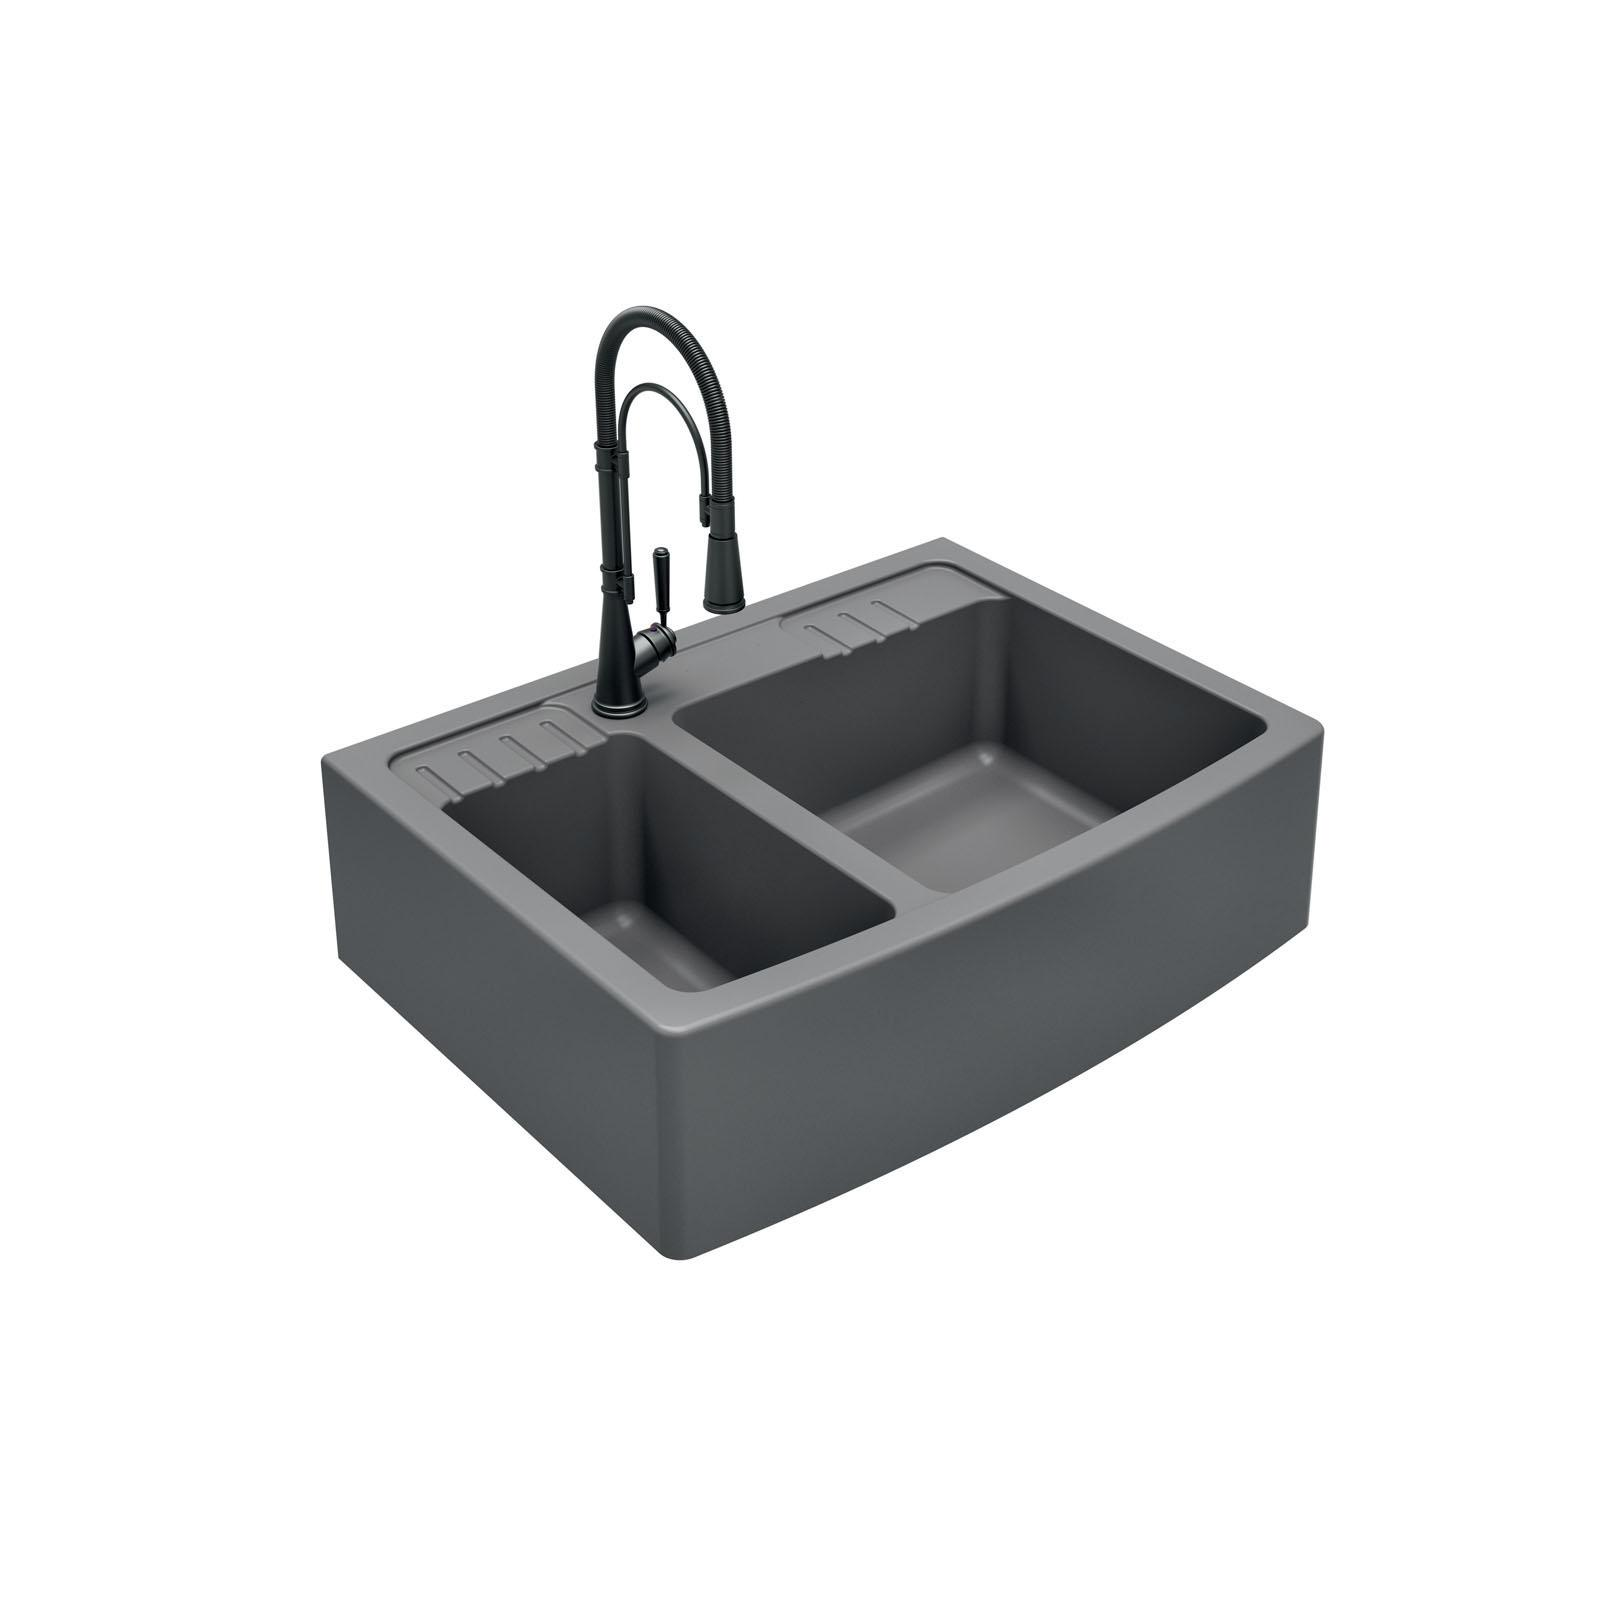 High-quality sink Clotaire III granit titanium - one and a half bowl - ambience 2